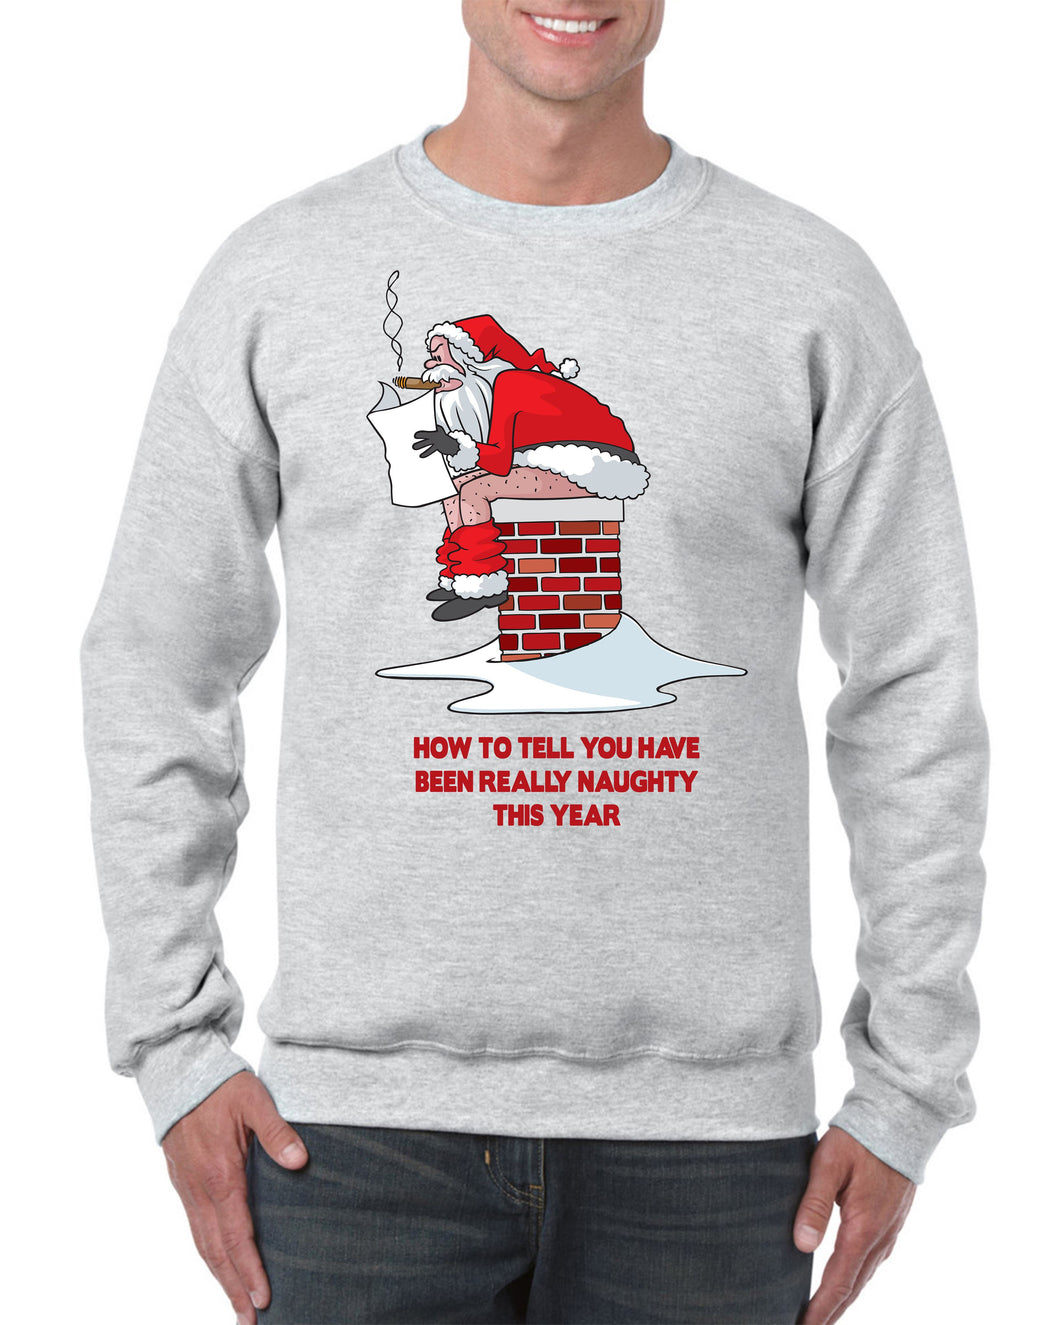 HOW TO TELL YOU'VE BEEN NAUGHTY CHRISTMAS SWEATER Jumper BanterKing Small Grey 1 JUMPER